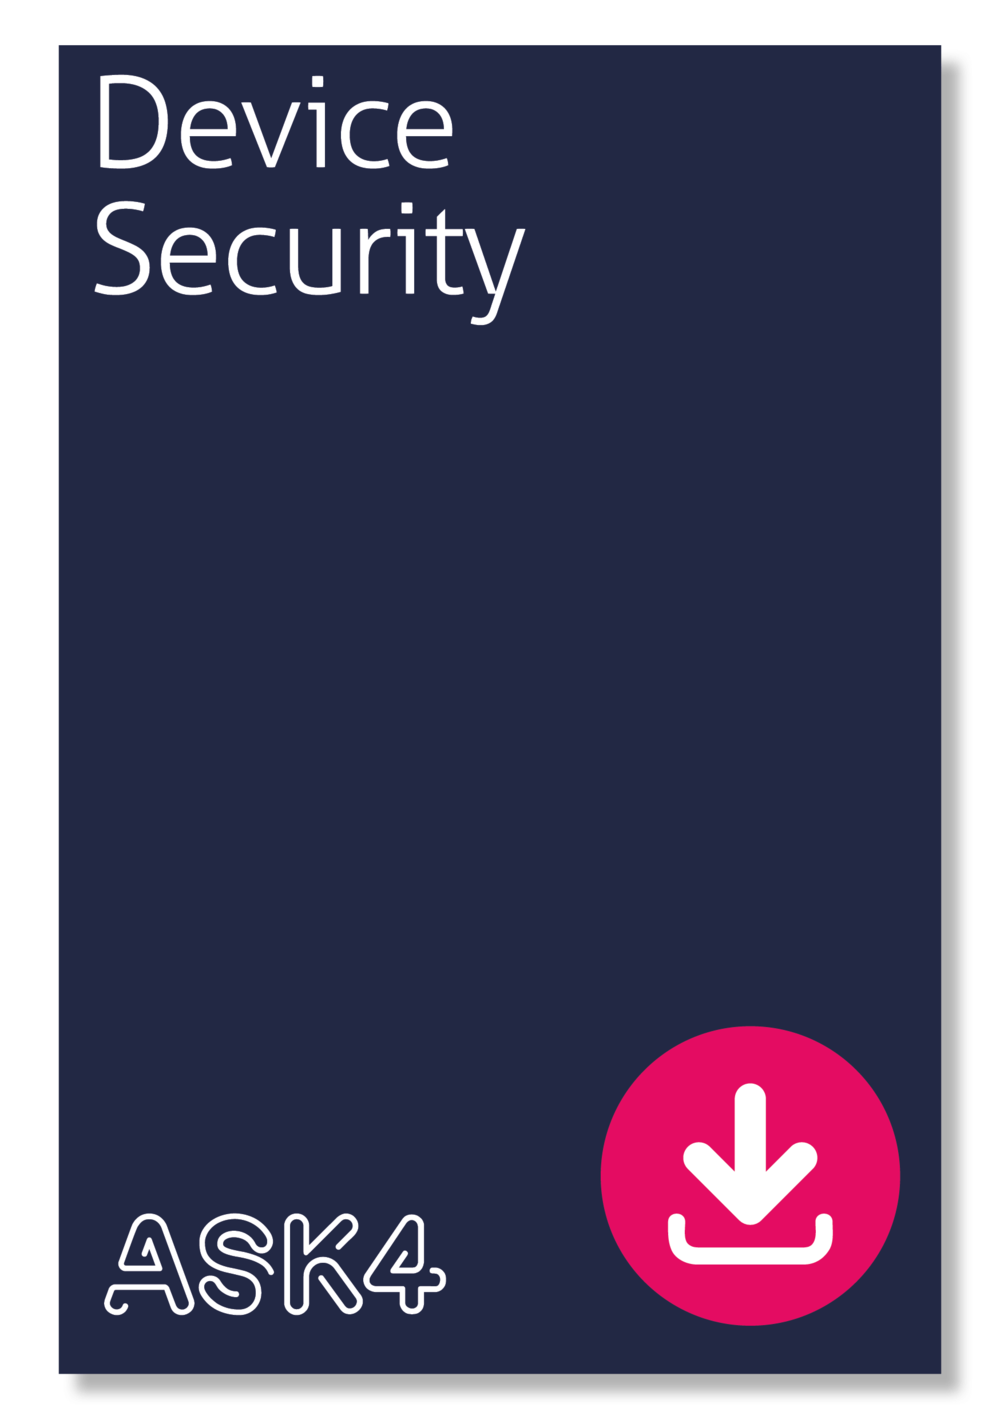 Device Security (1).png